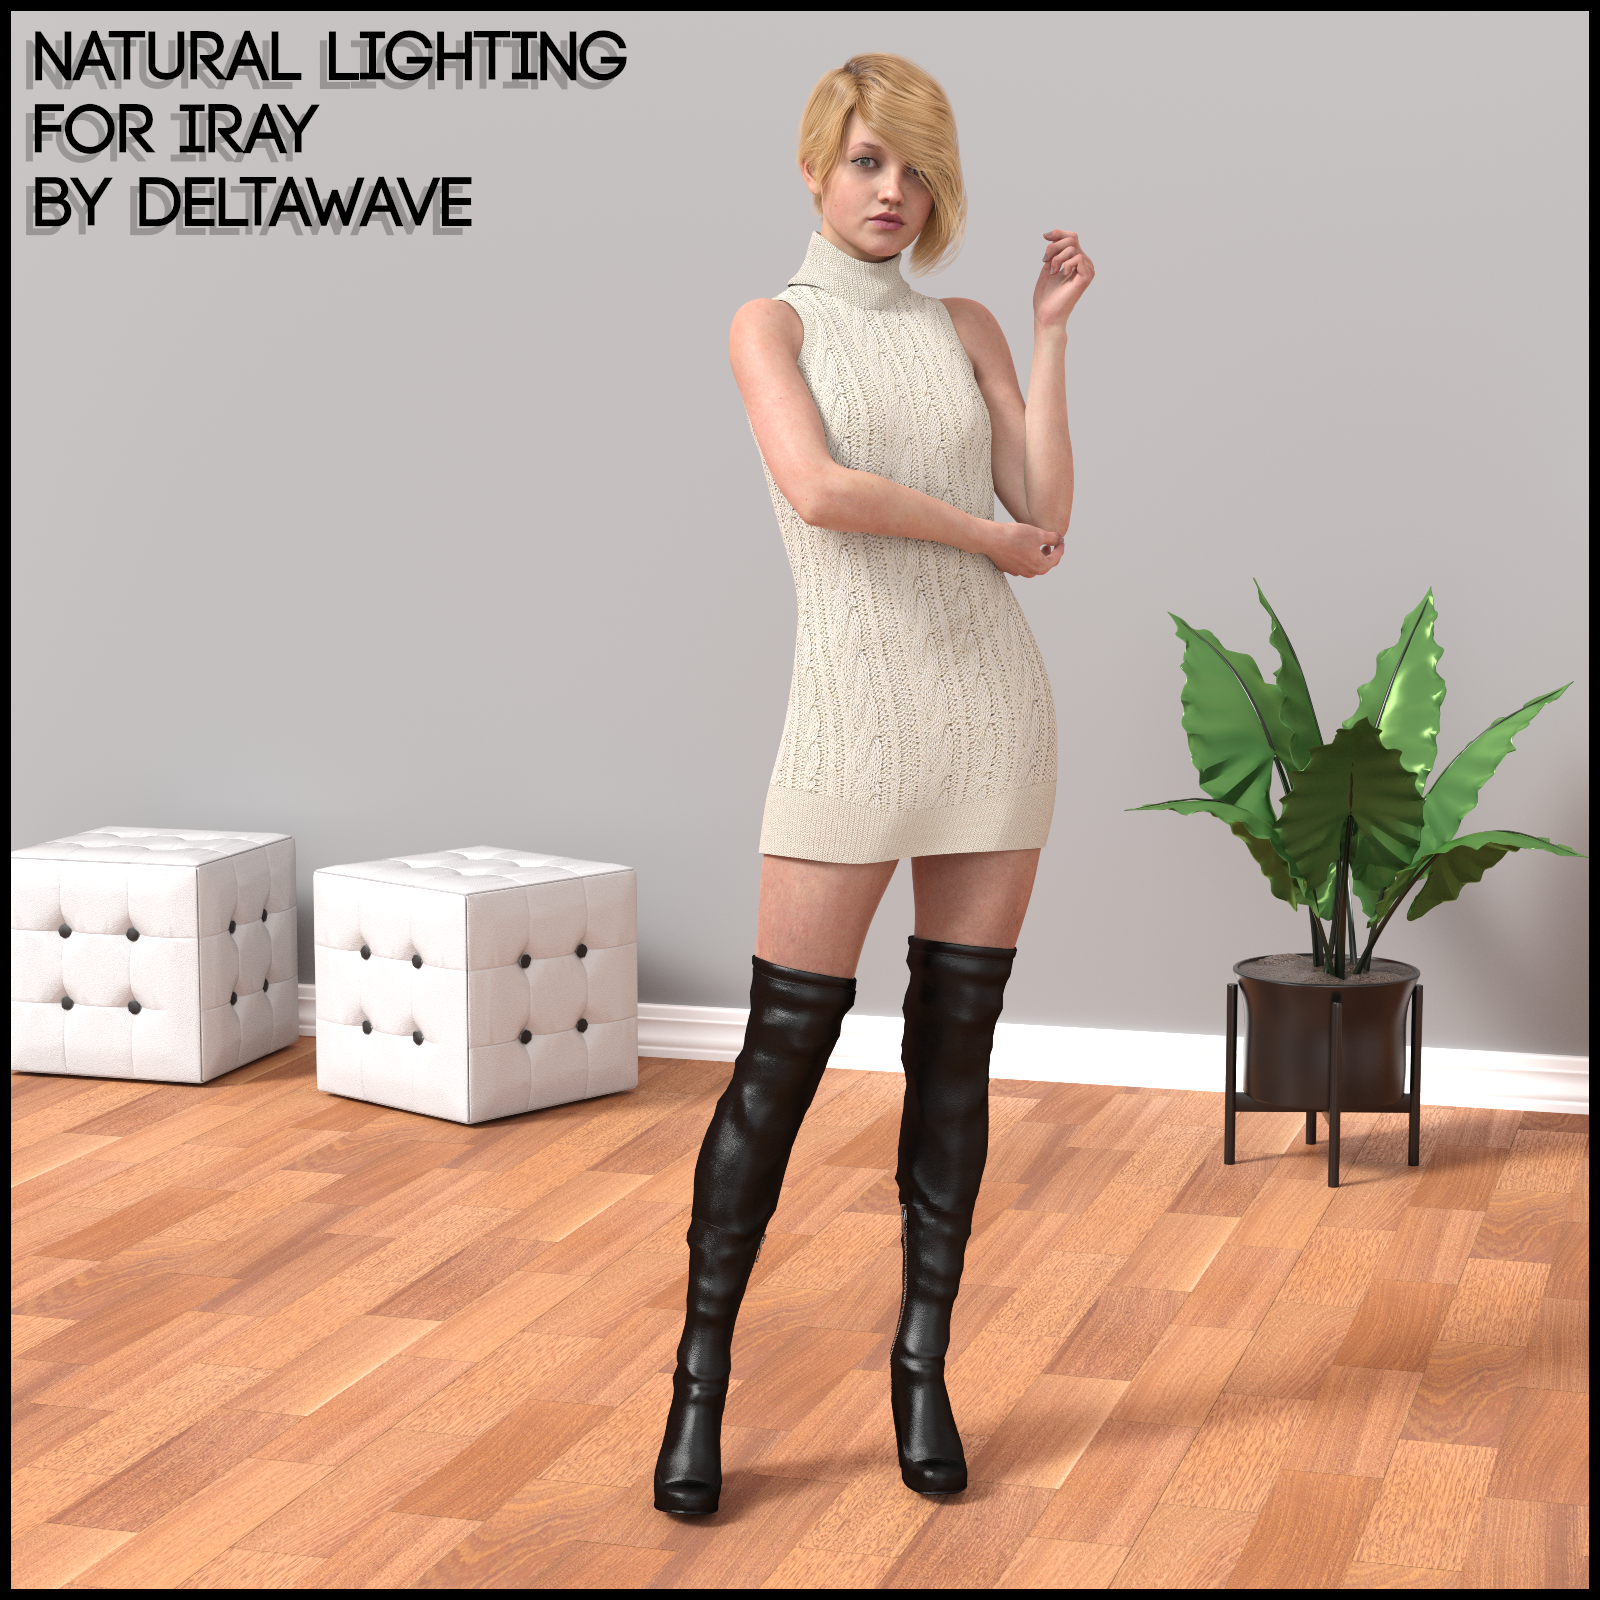 Natural Lighting For Iray by DeltaWave